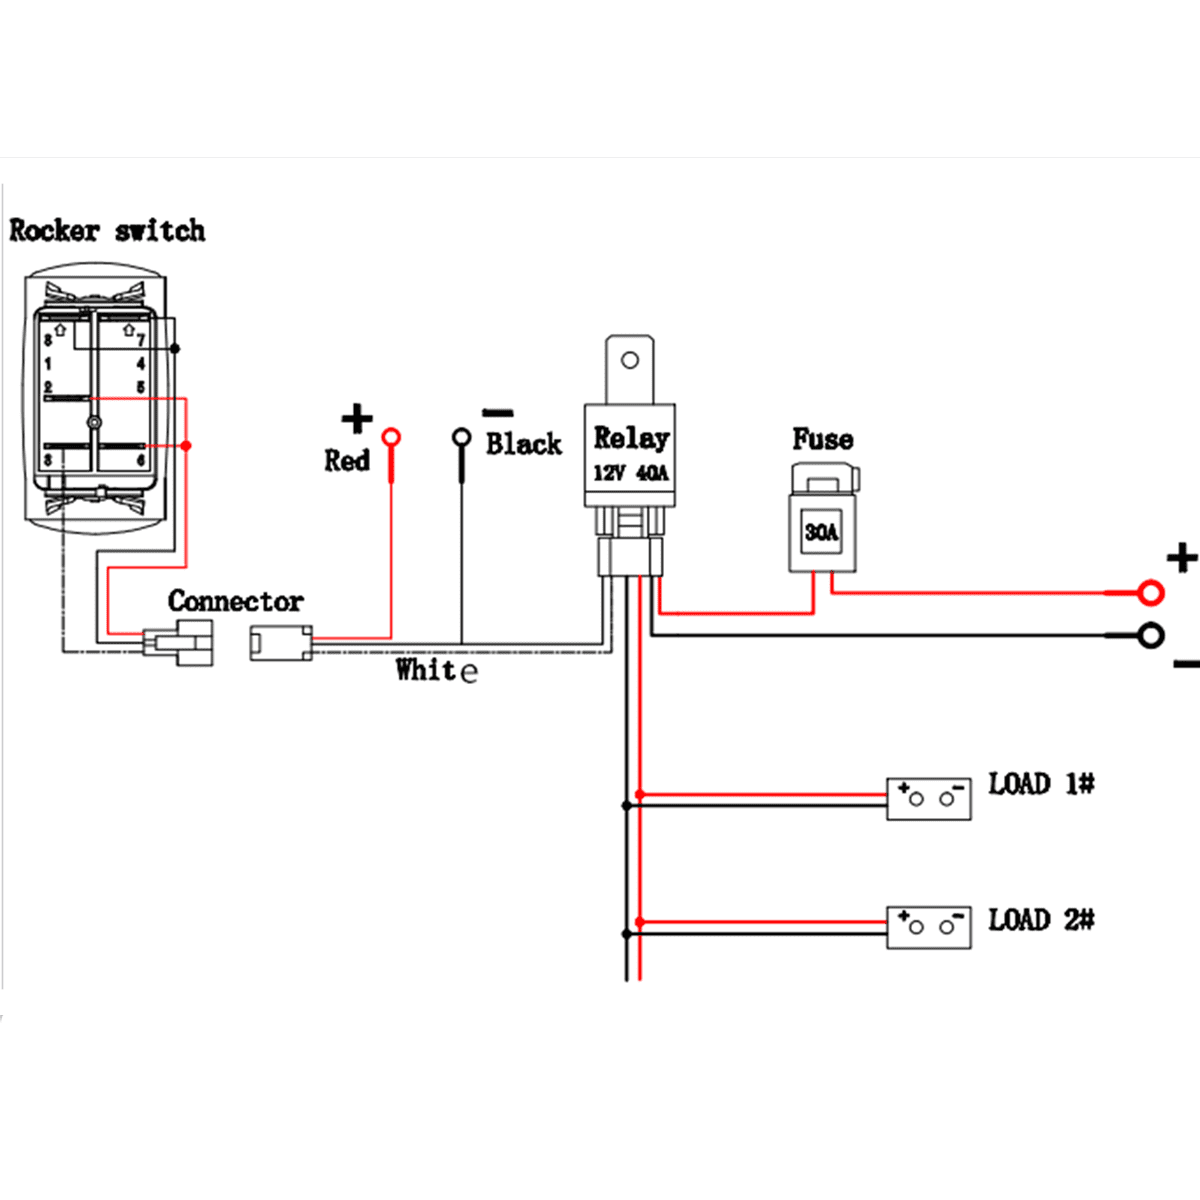 12v 20a Rocker Switch Wiring Diagram - Find Wiring Diagram •